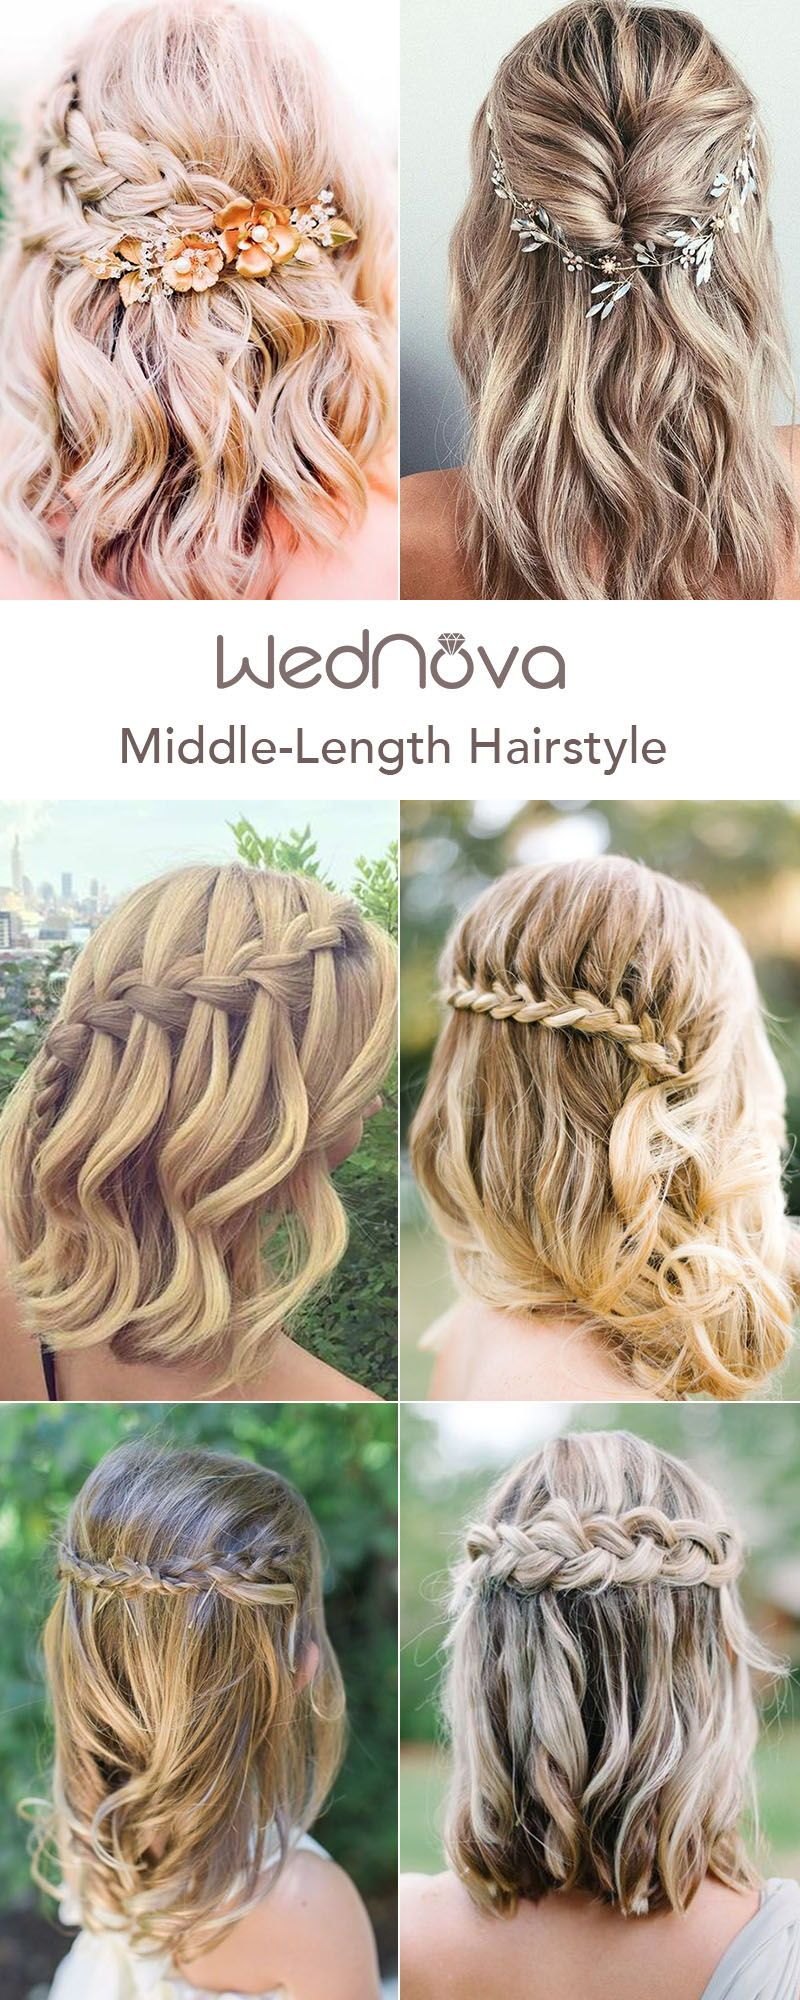 48 Easy Wedding Hairstyles Best Guide For Your Bridesmaids In 2019 Short Wedding Hair Bridesmaid Hair Medium Length Half Up Half Down Short Hair